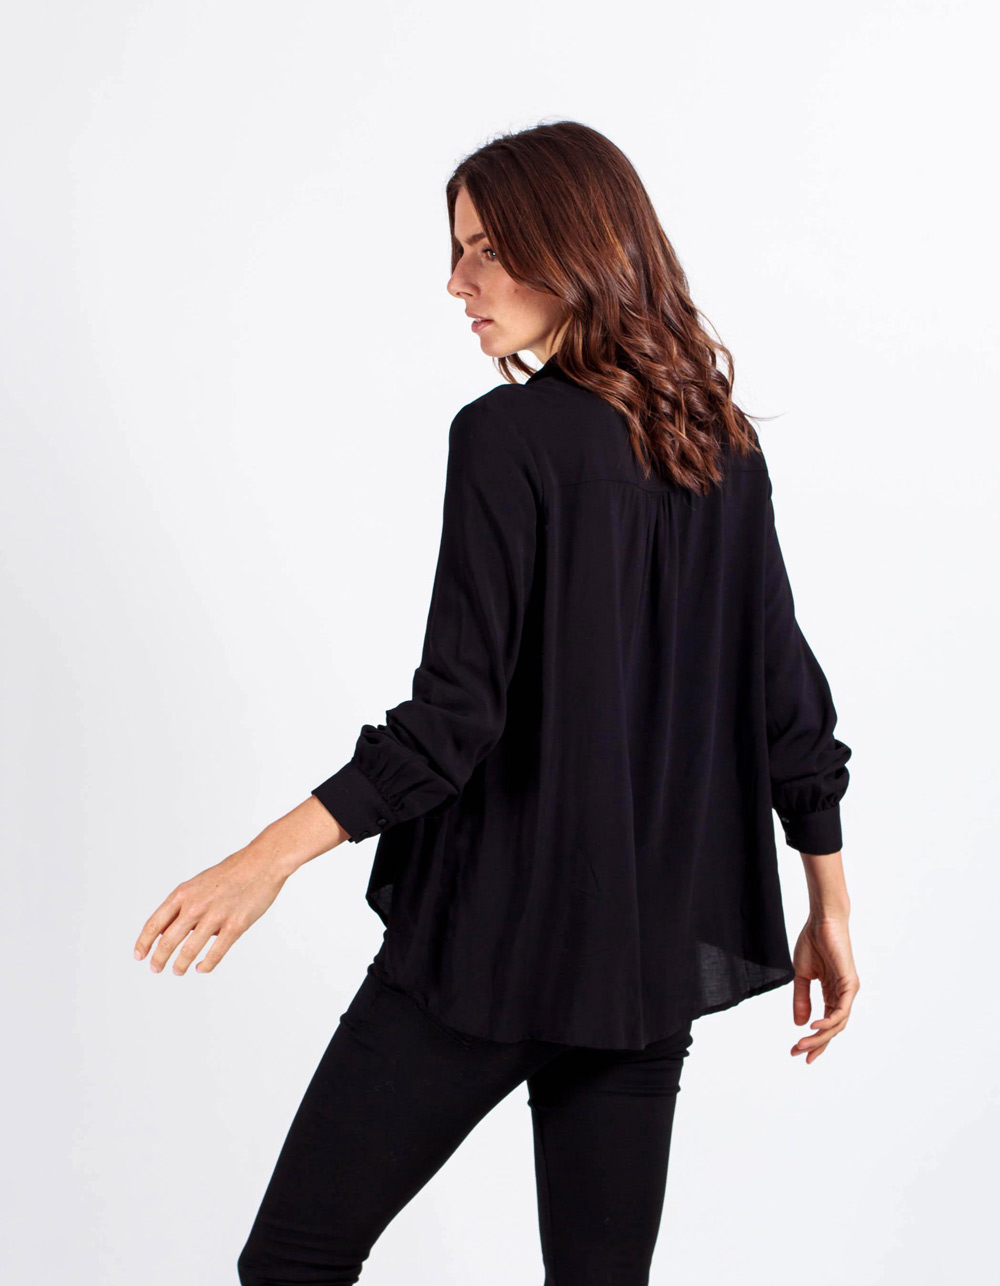 Camisa lisa - Backside